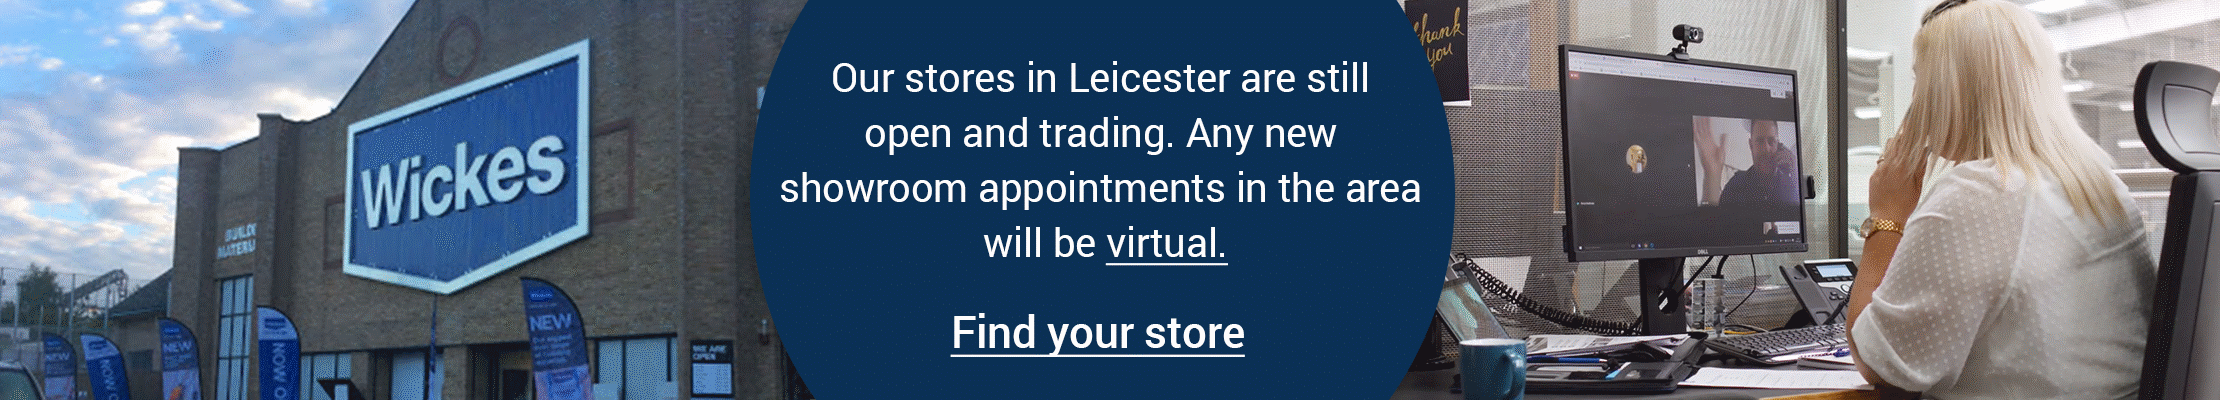 Our Leicester stores are still open and trading